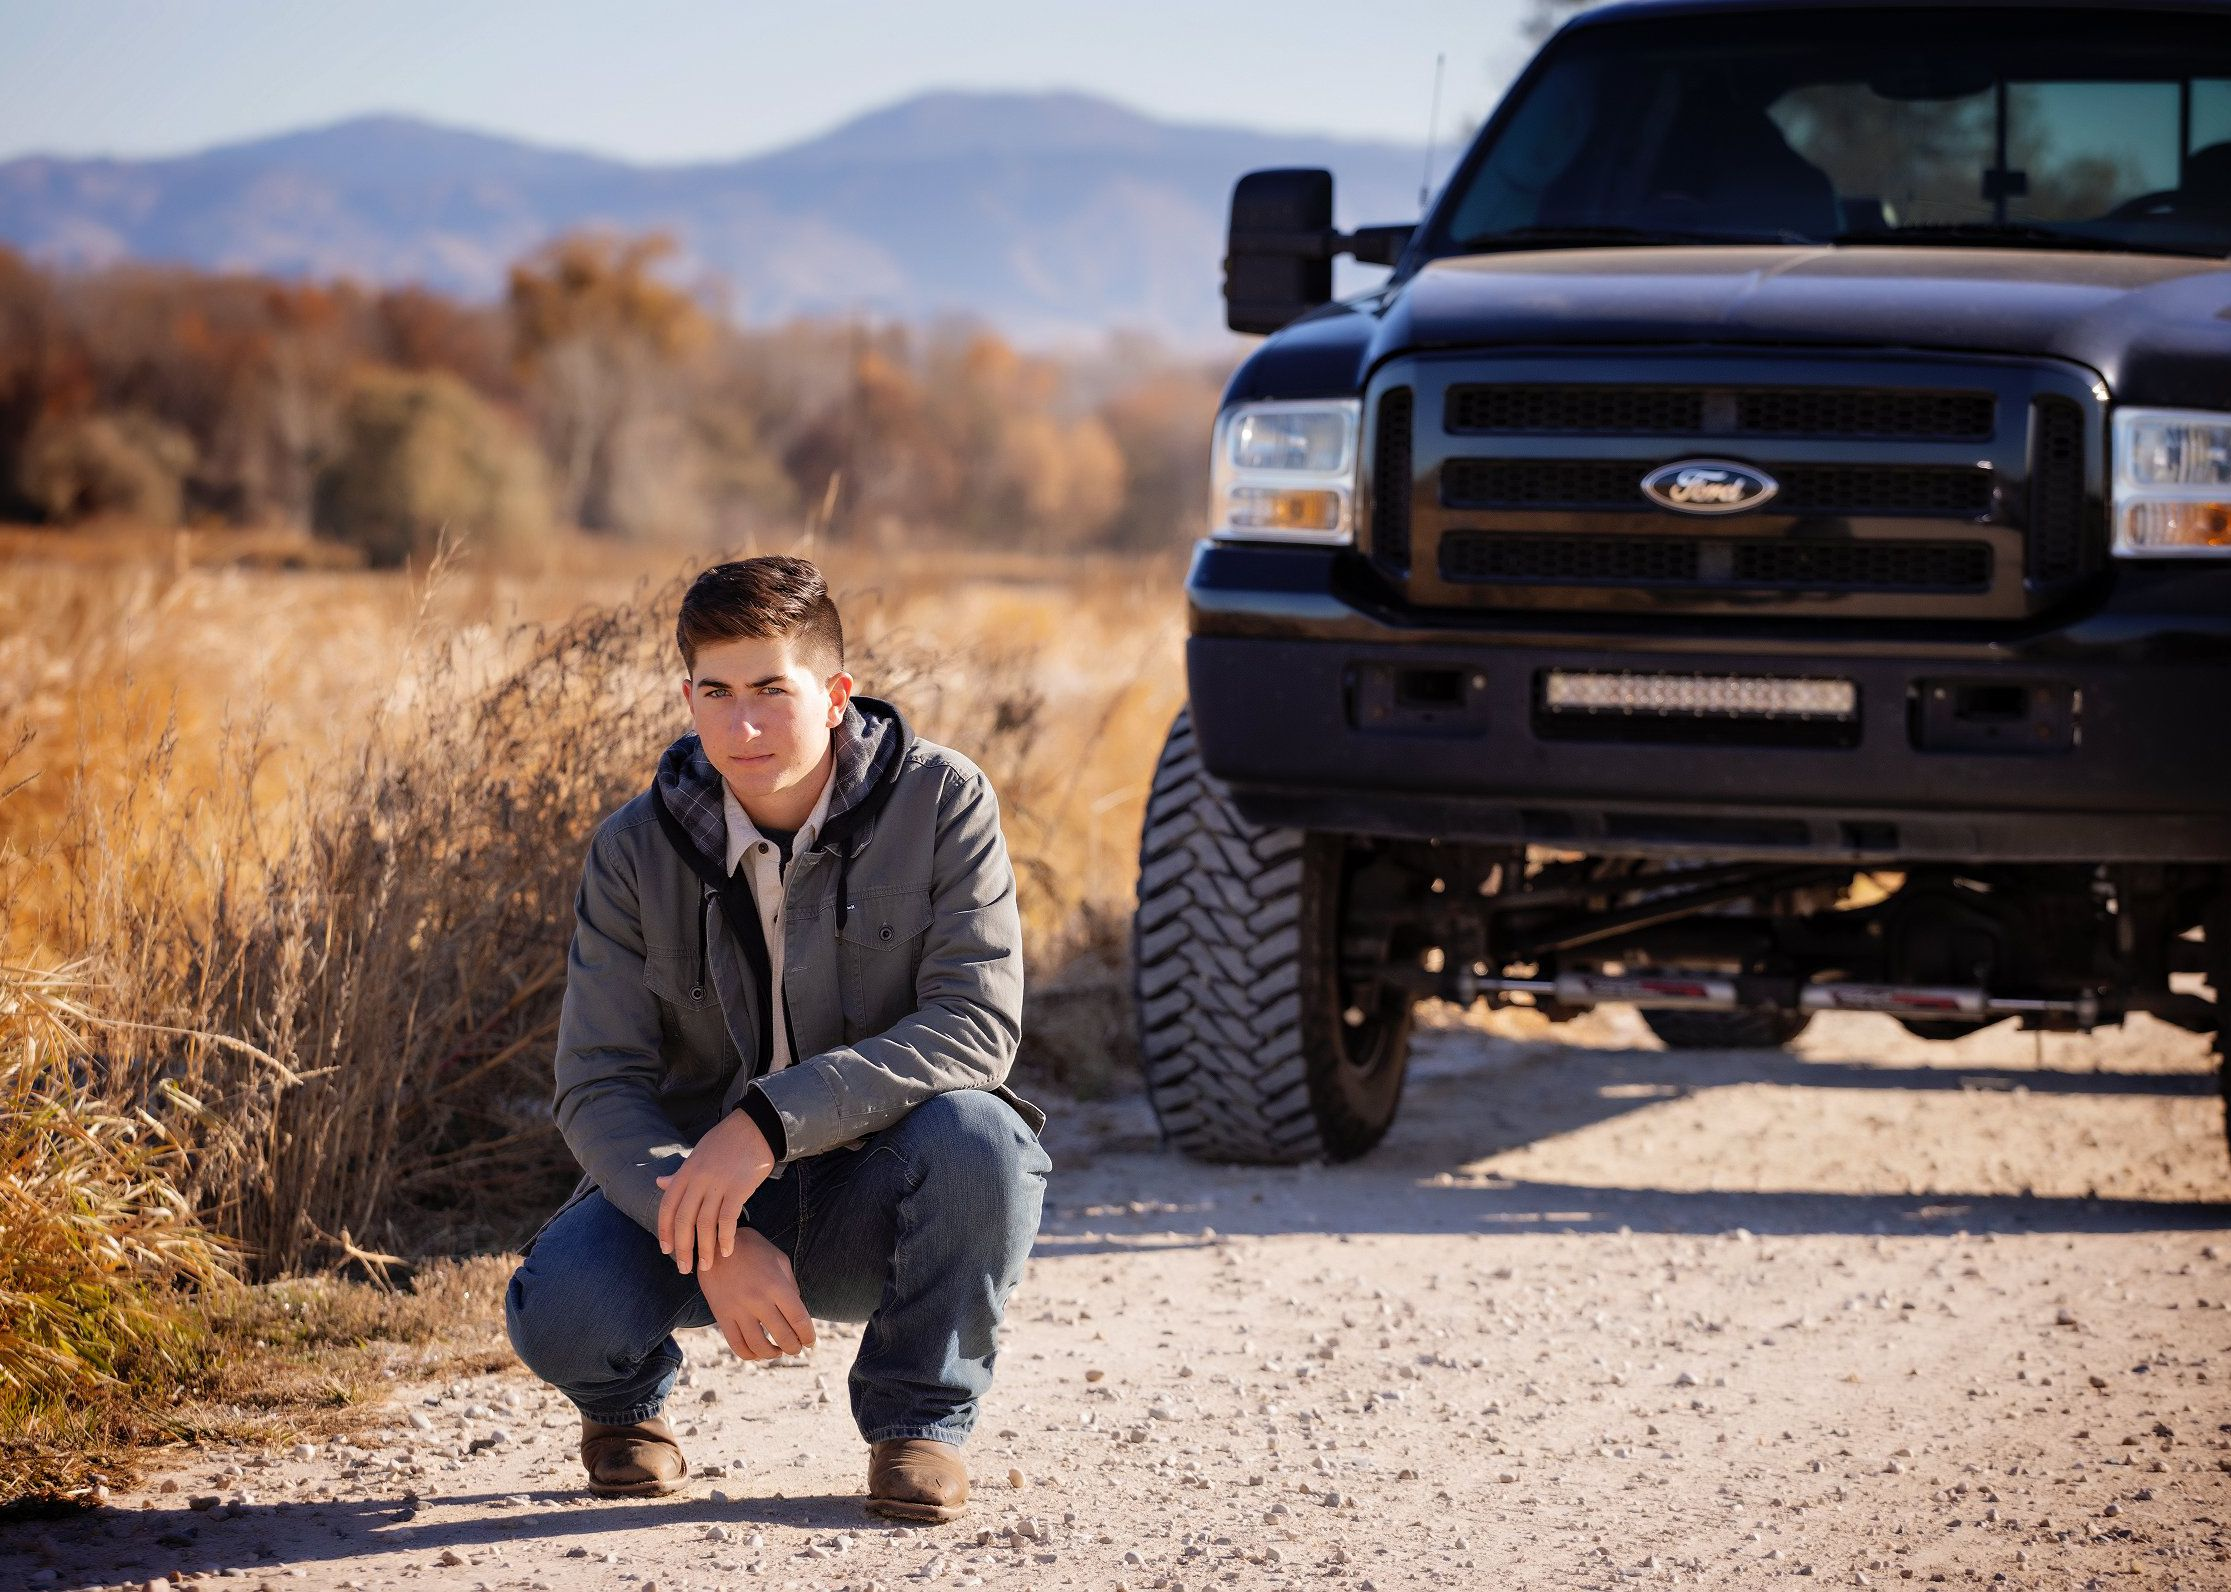 Man crouching in front of a truck